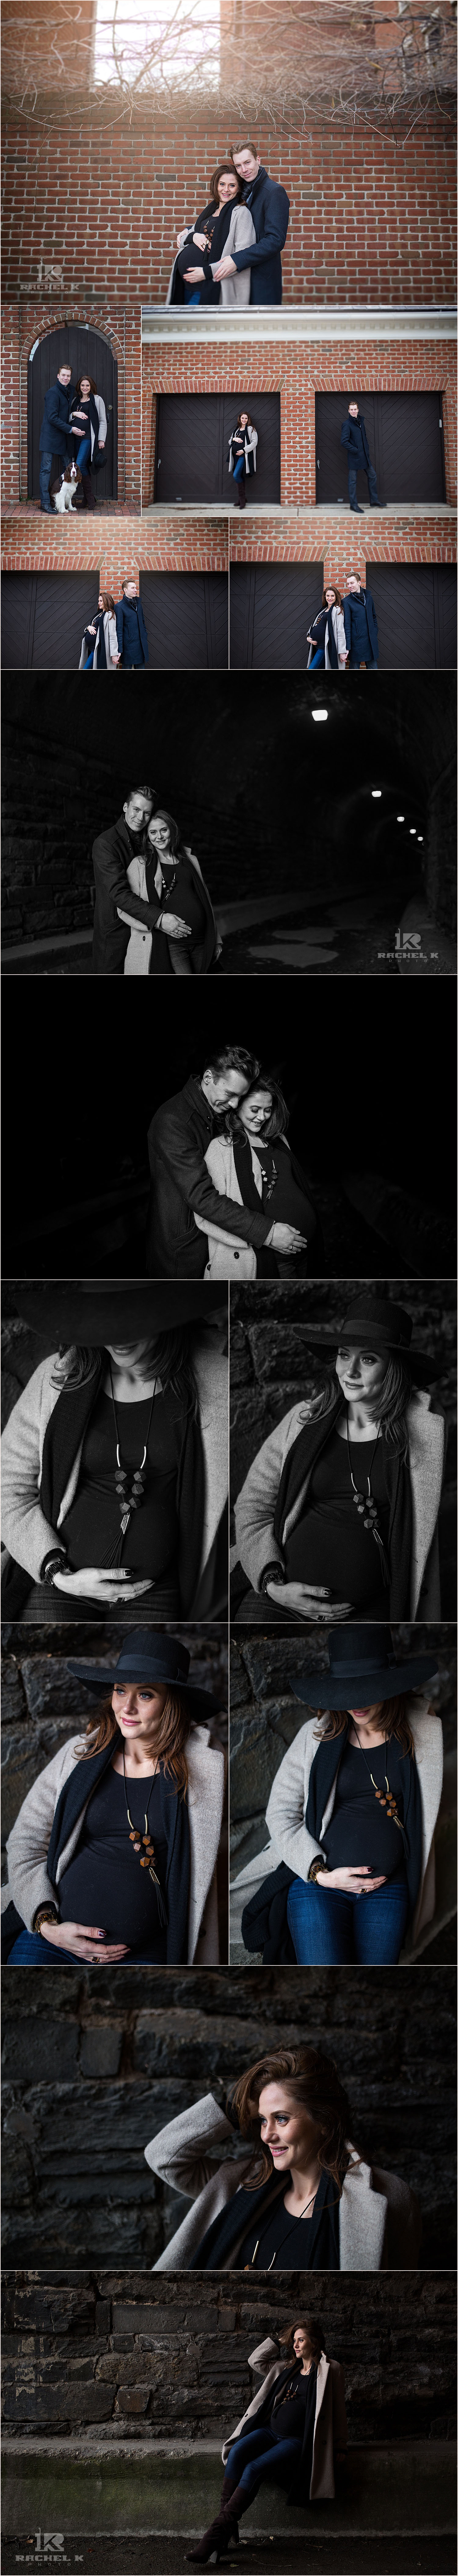 Old Town maternity session by Rachel K Photo